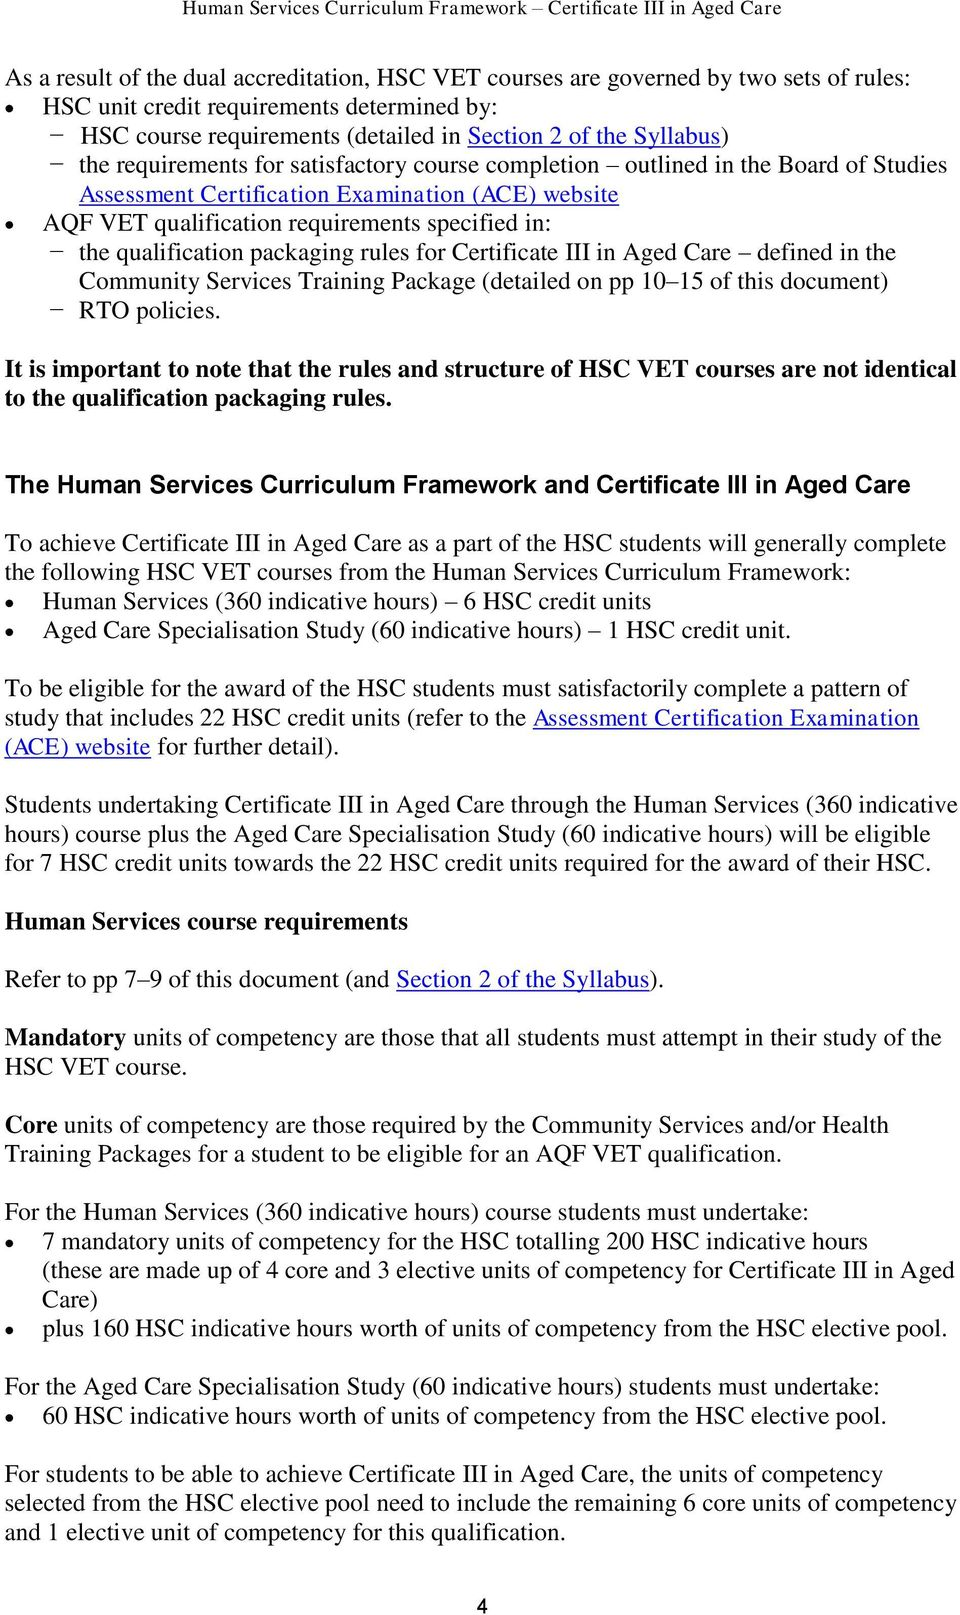 qualification packaging rules for Certificate III in Aged Care defined in the Community Services Training Package (detailed on pp 10 15 of this document) RTO policies.